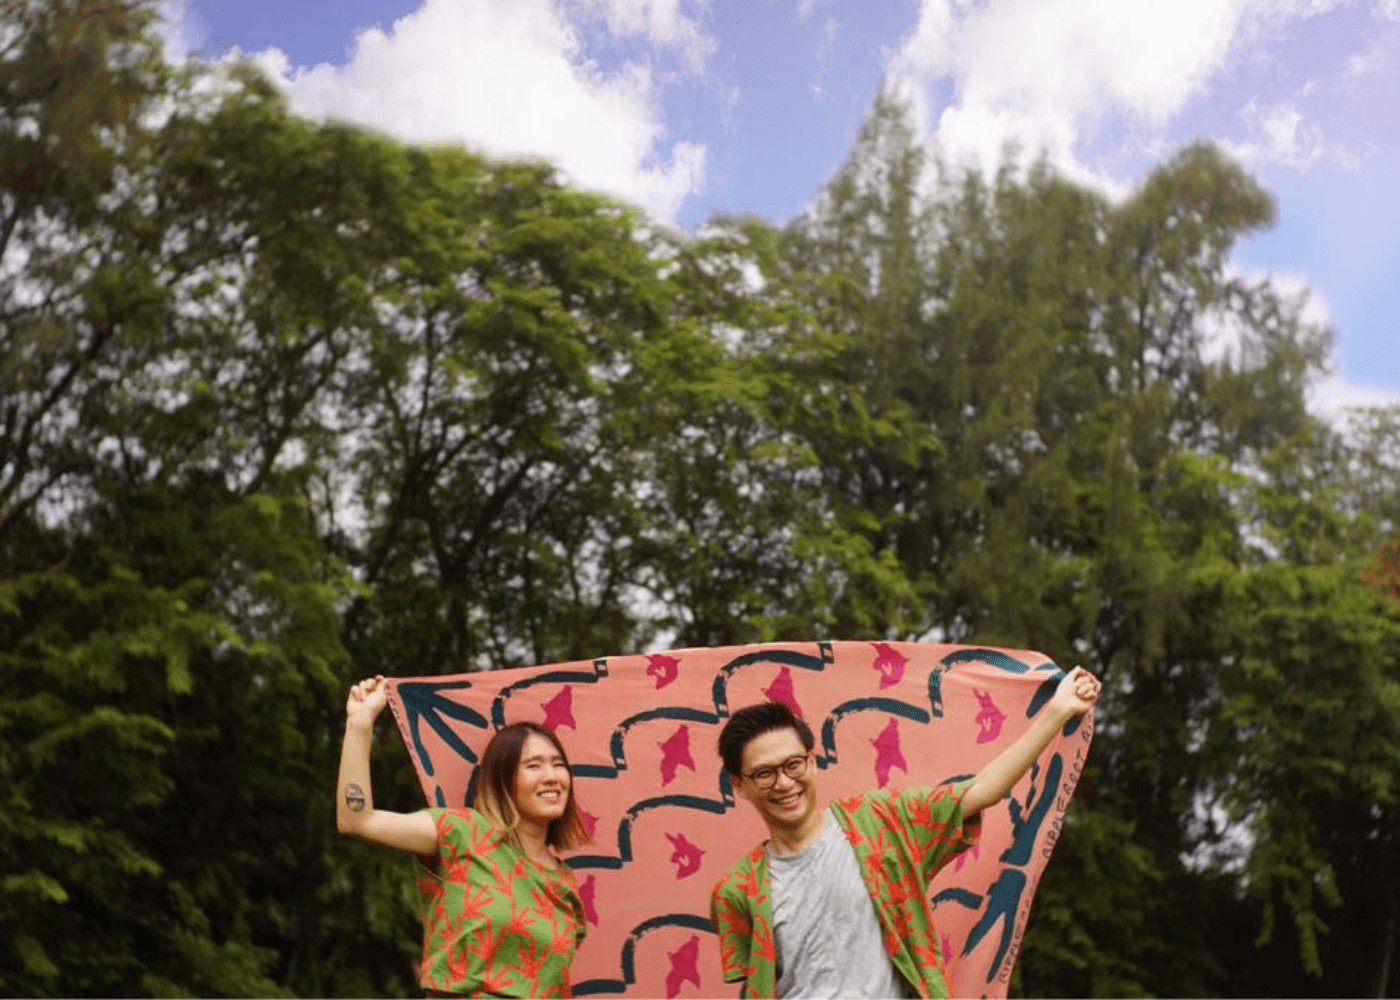 Pretty in prints: Matter collaborates with Ripple Root for a crowdfunding project to raise one last hurrah